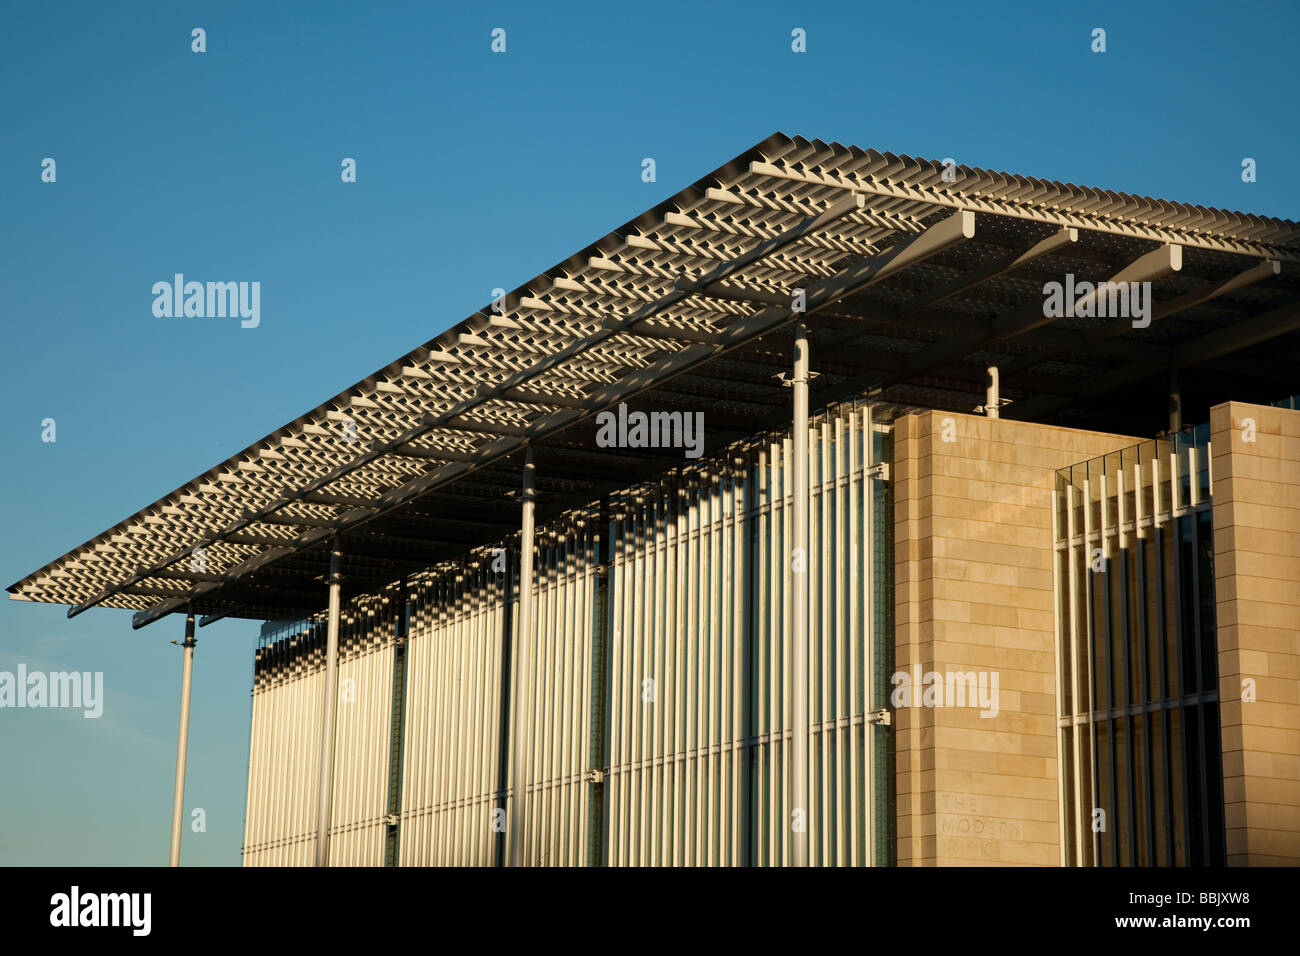 CHICAGO Illinois Detail of architecture of Modern Wing addition to Art Institute museum - Stock Image